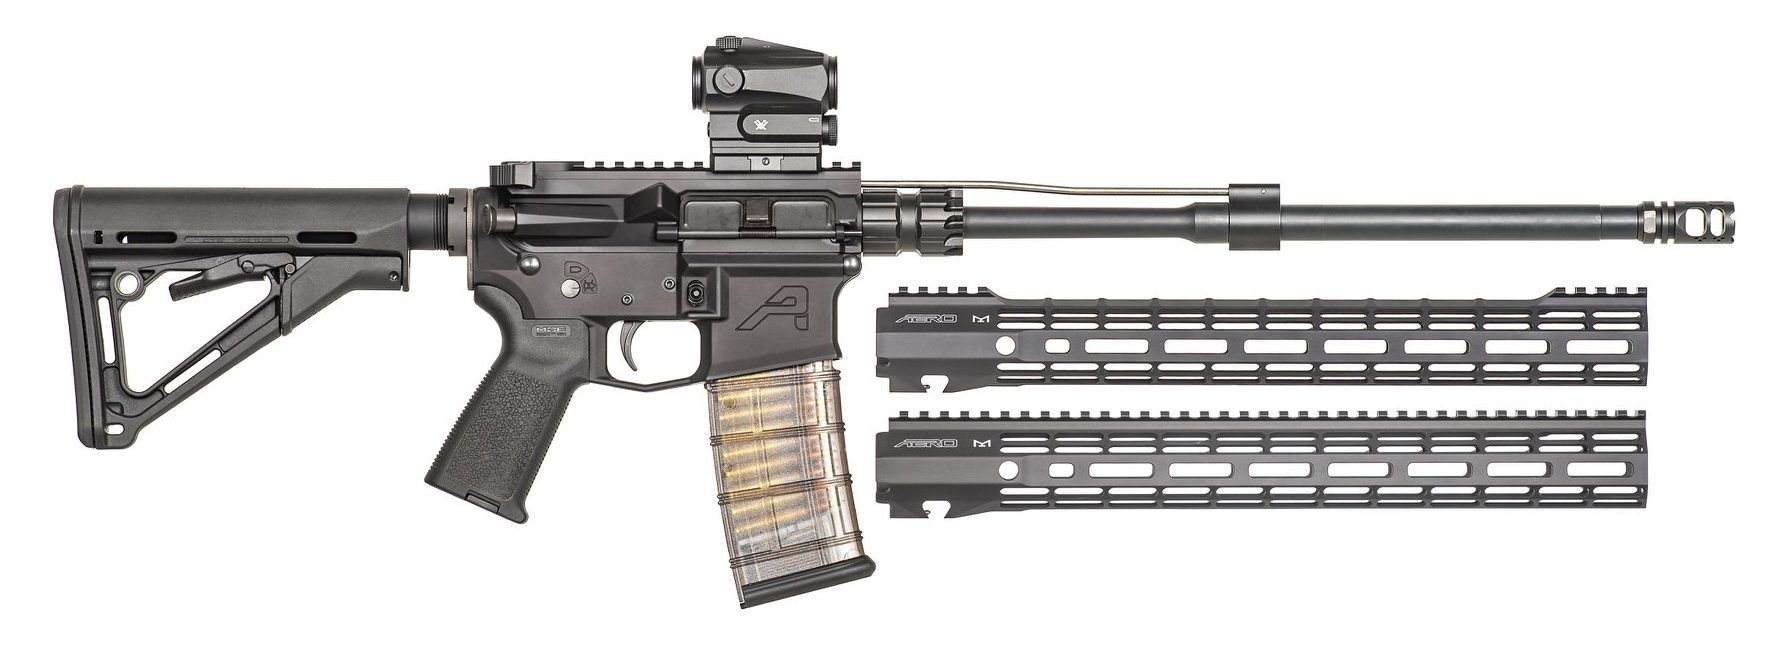 Aero Precision ATLAS Handguard Overview